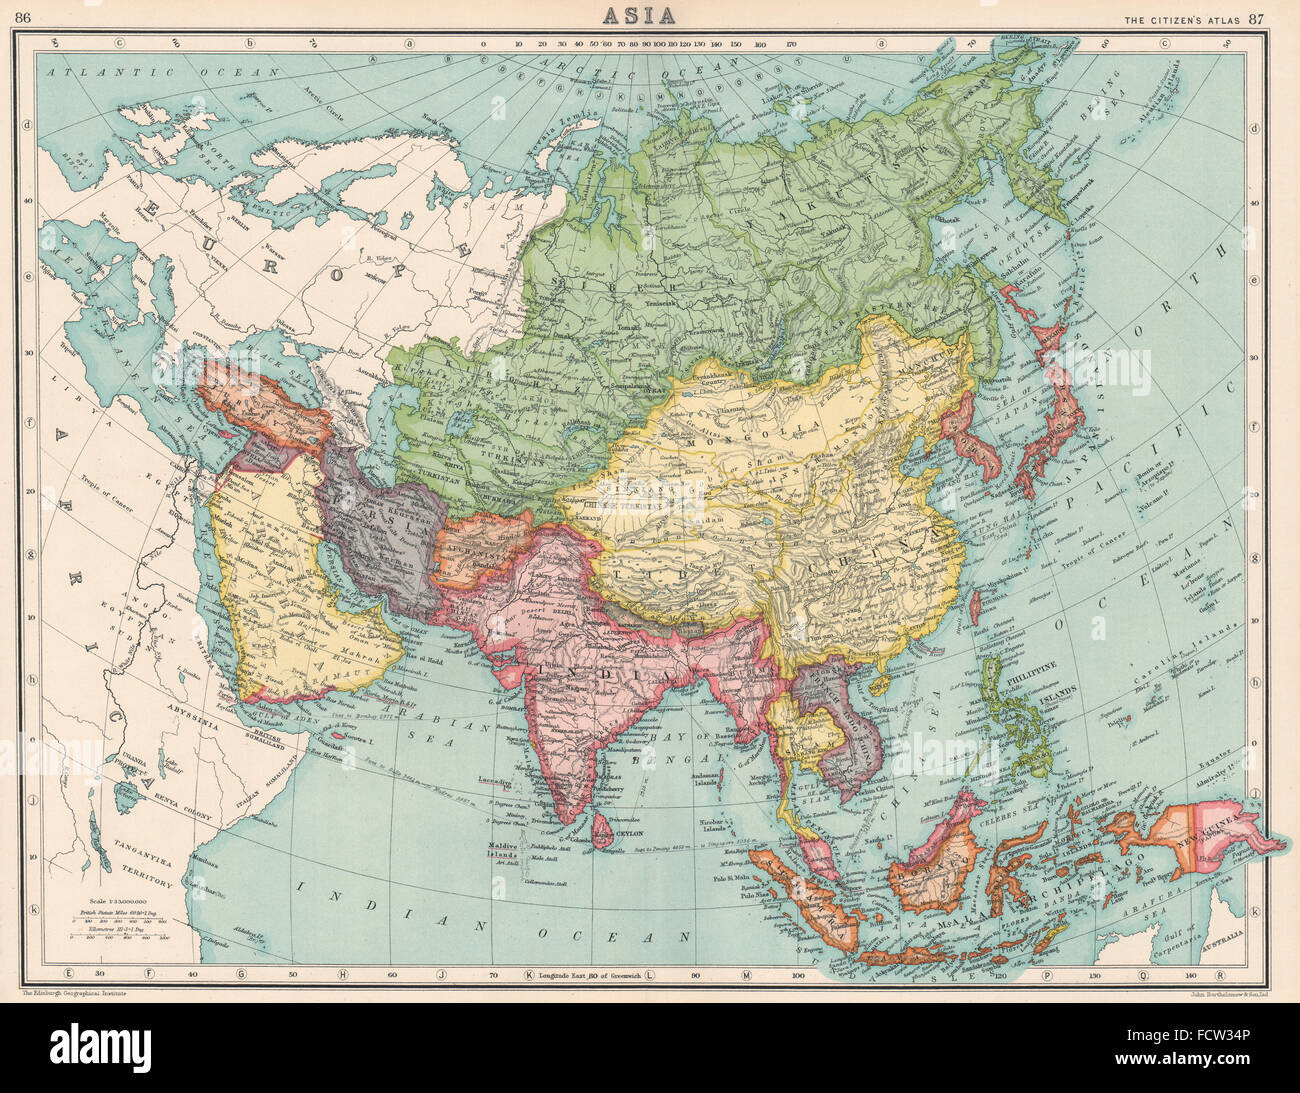 Map of british india stock photos map of british india stock asia british india japanese occupied korea syria lebanon unified 1924 gumiabroncs Image collections